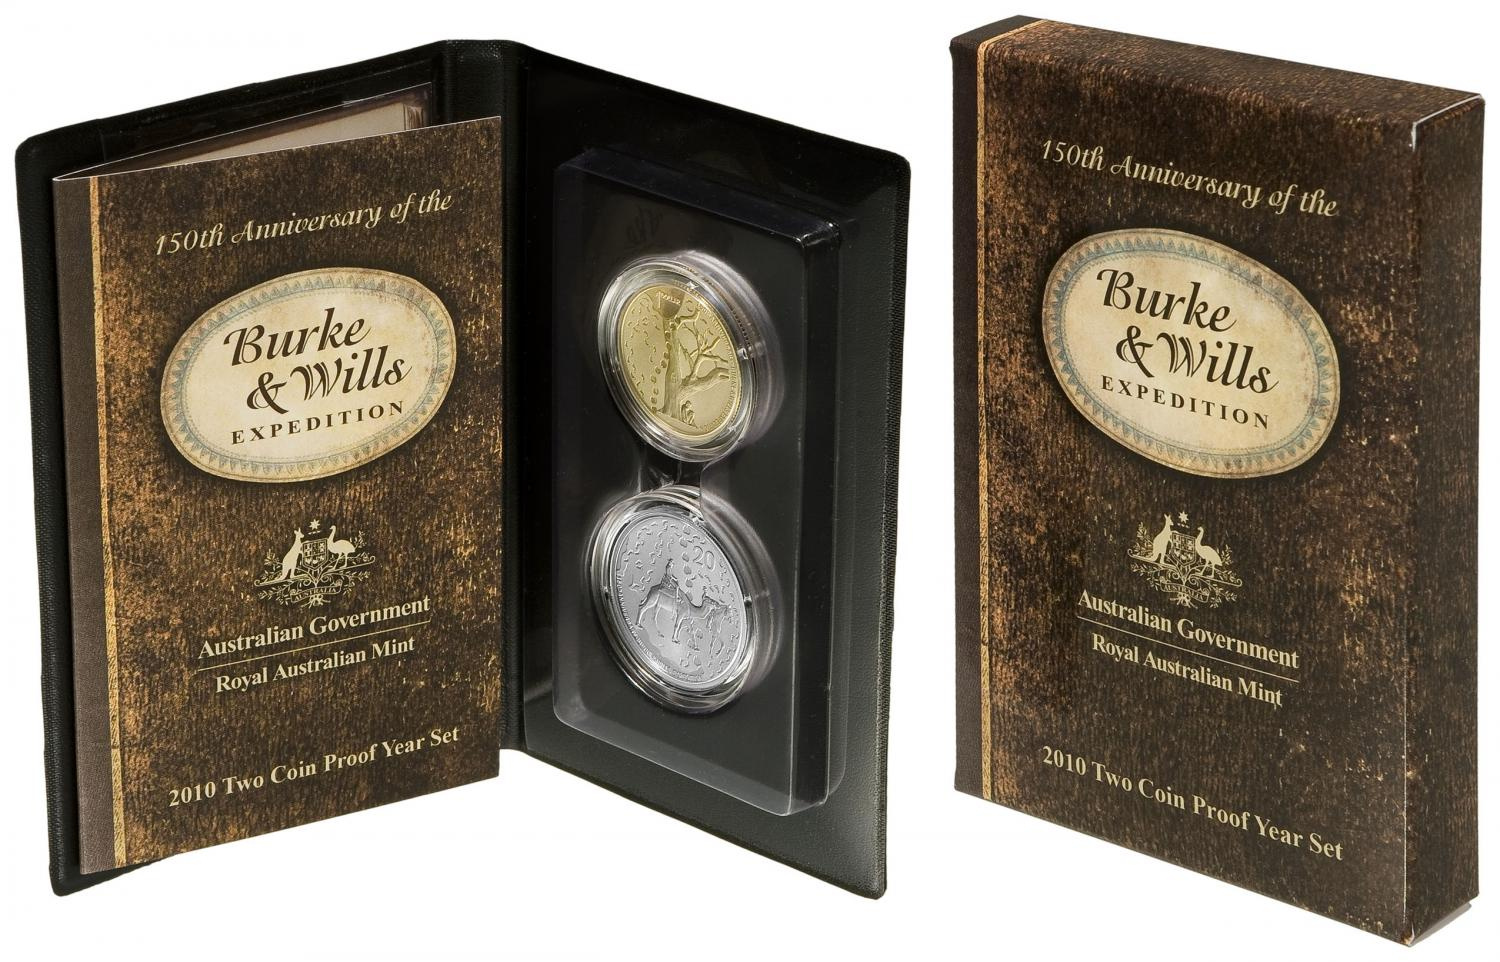 Thumbnail for 2010 Two Coin Proof Set - 150th Anniversary of the Burke & Wills Expedition